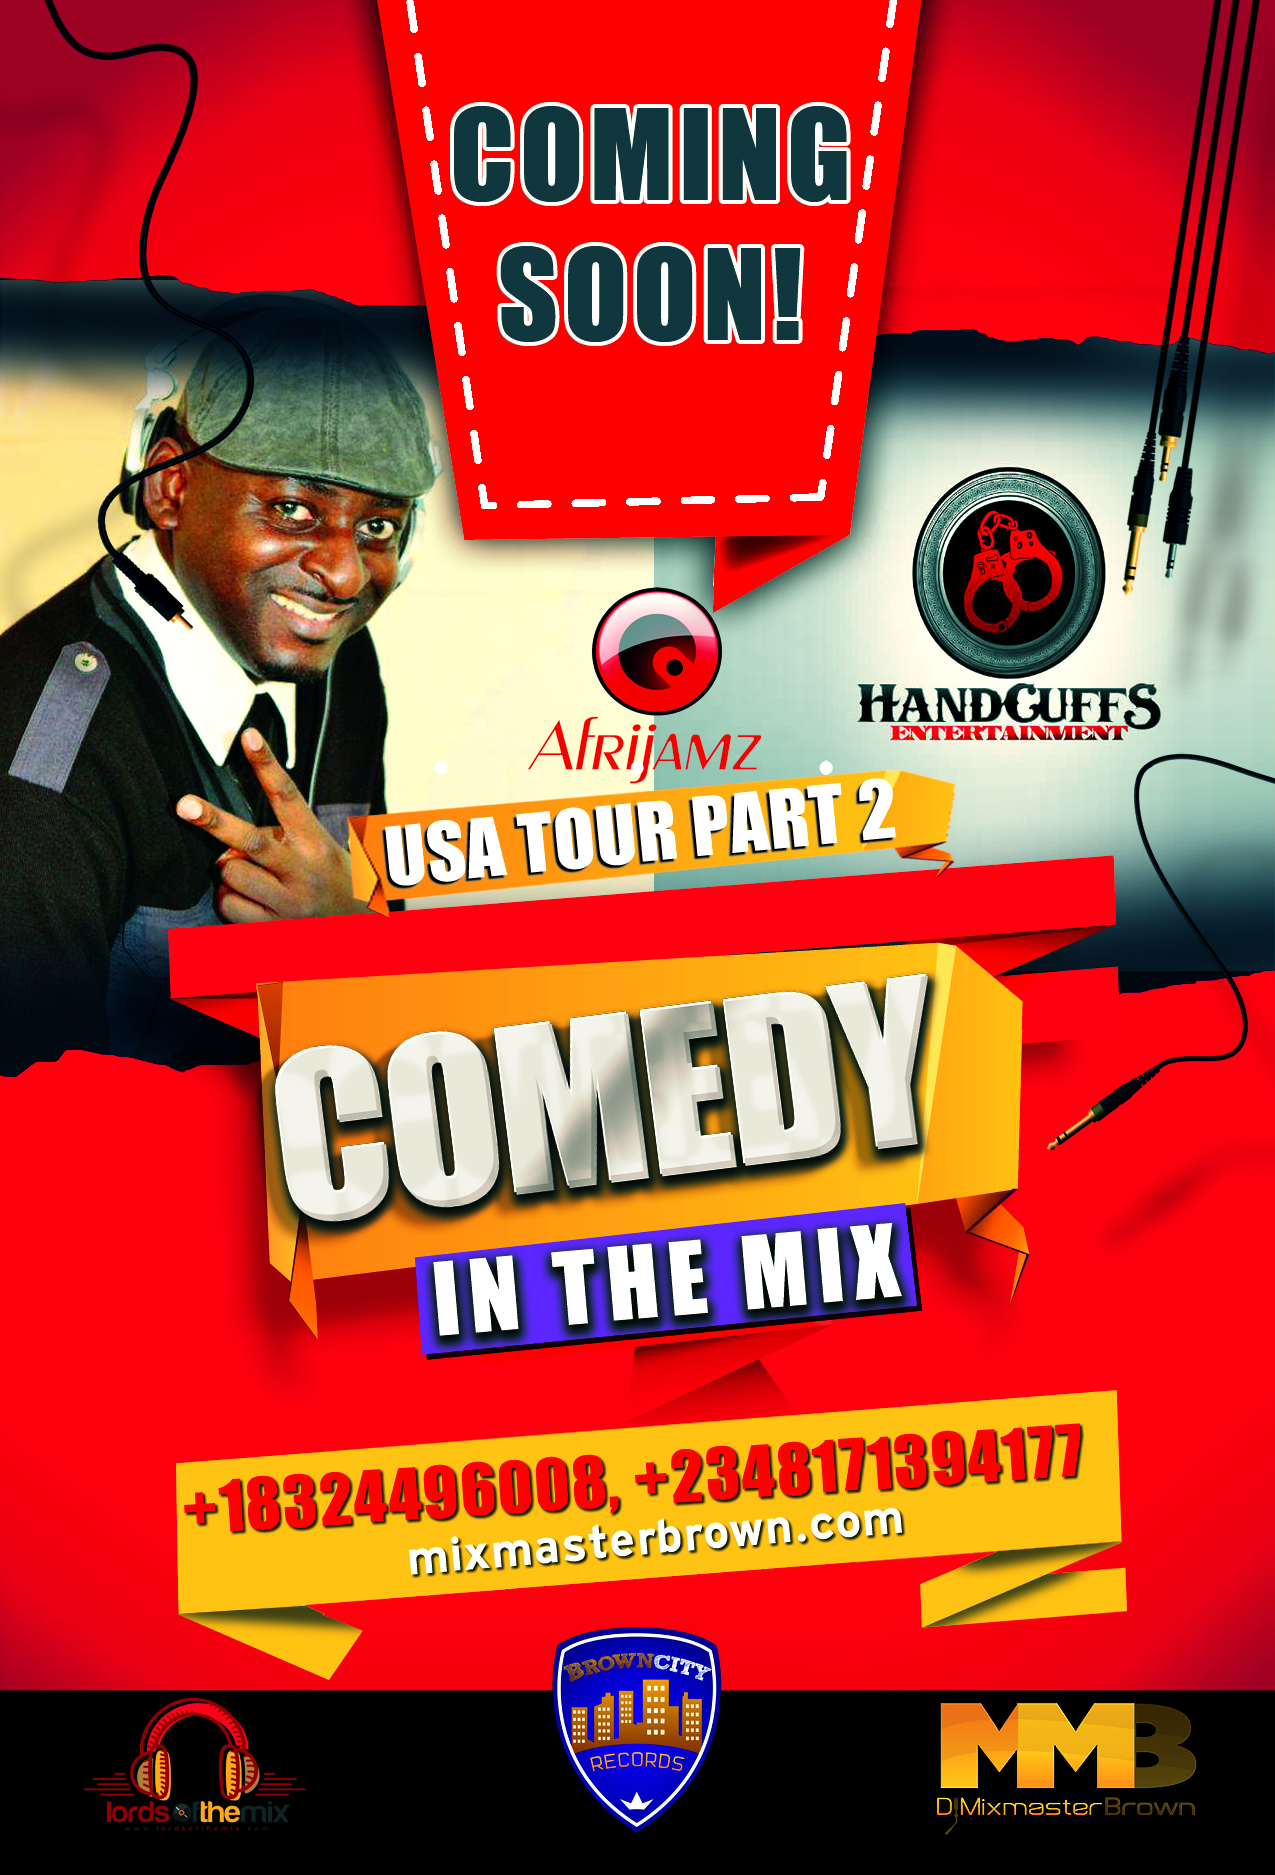 Comedy In The Mix - Dj Mixmasterbrown